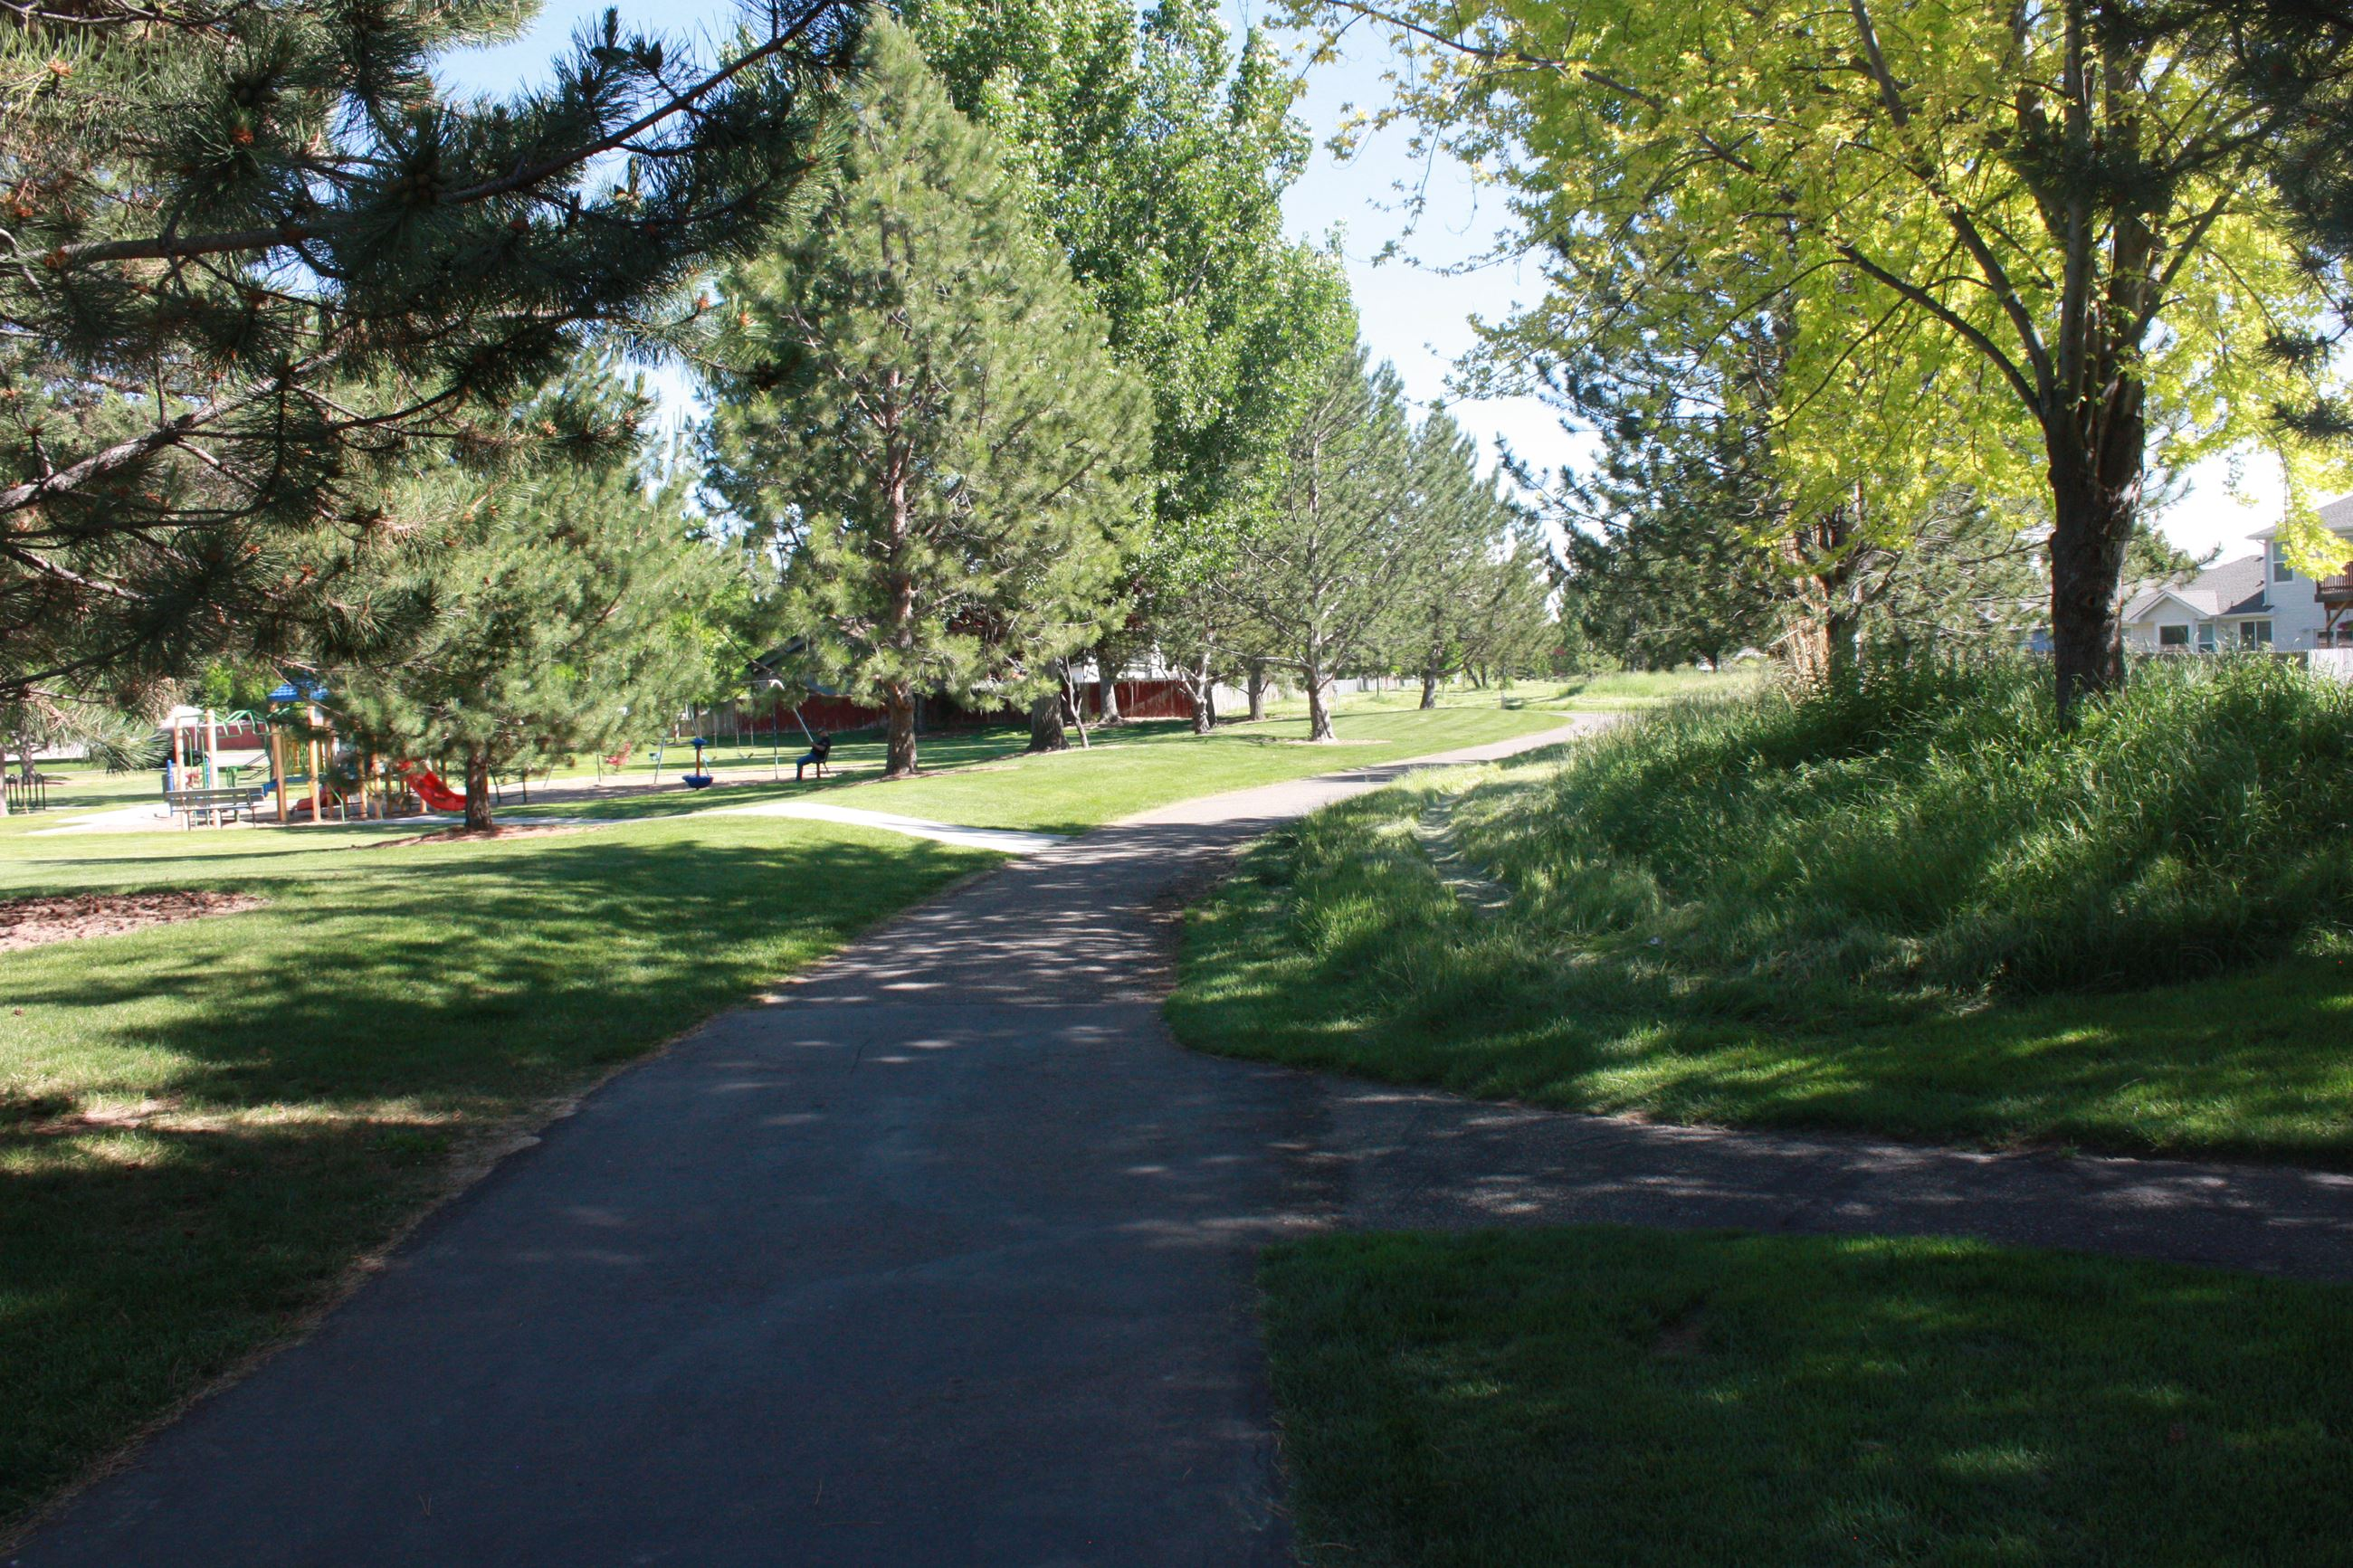 Paved path with grass and large trees on the side